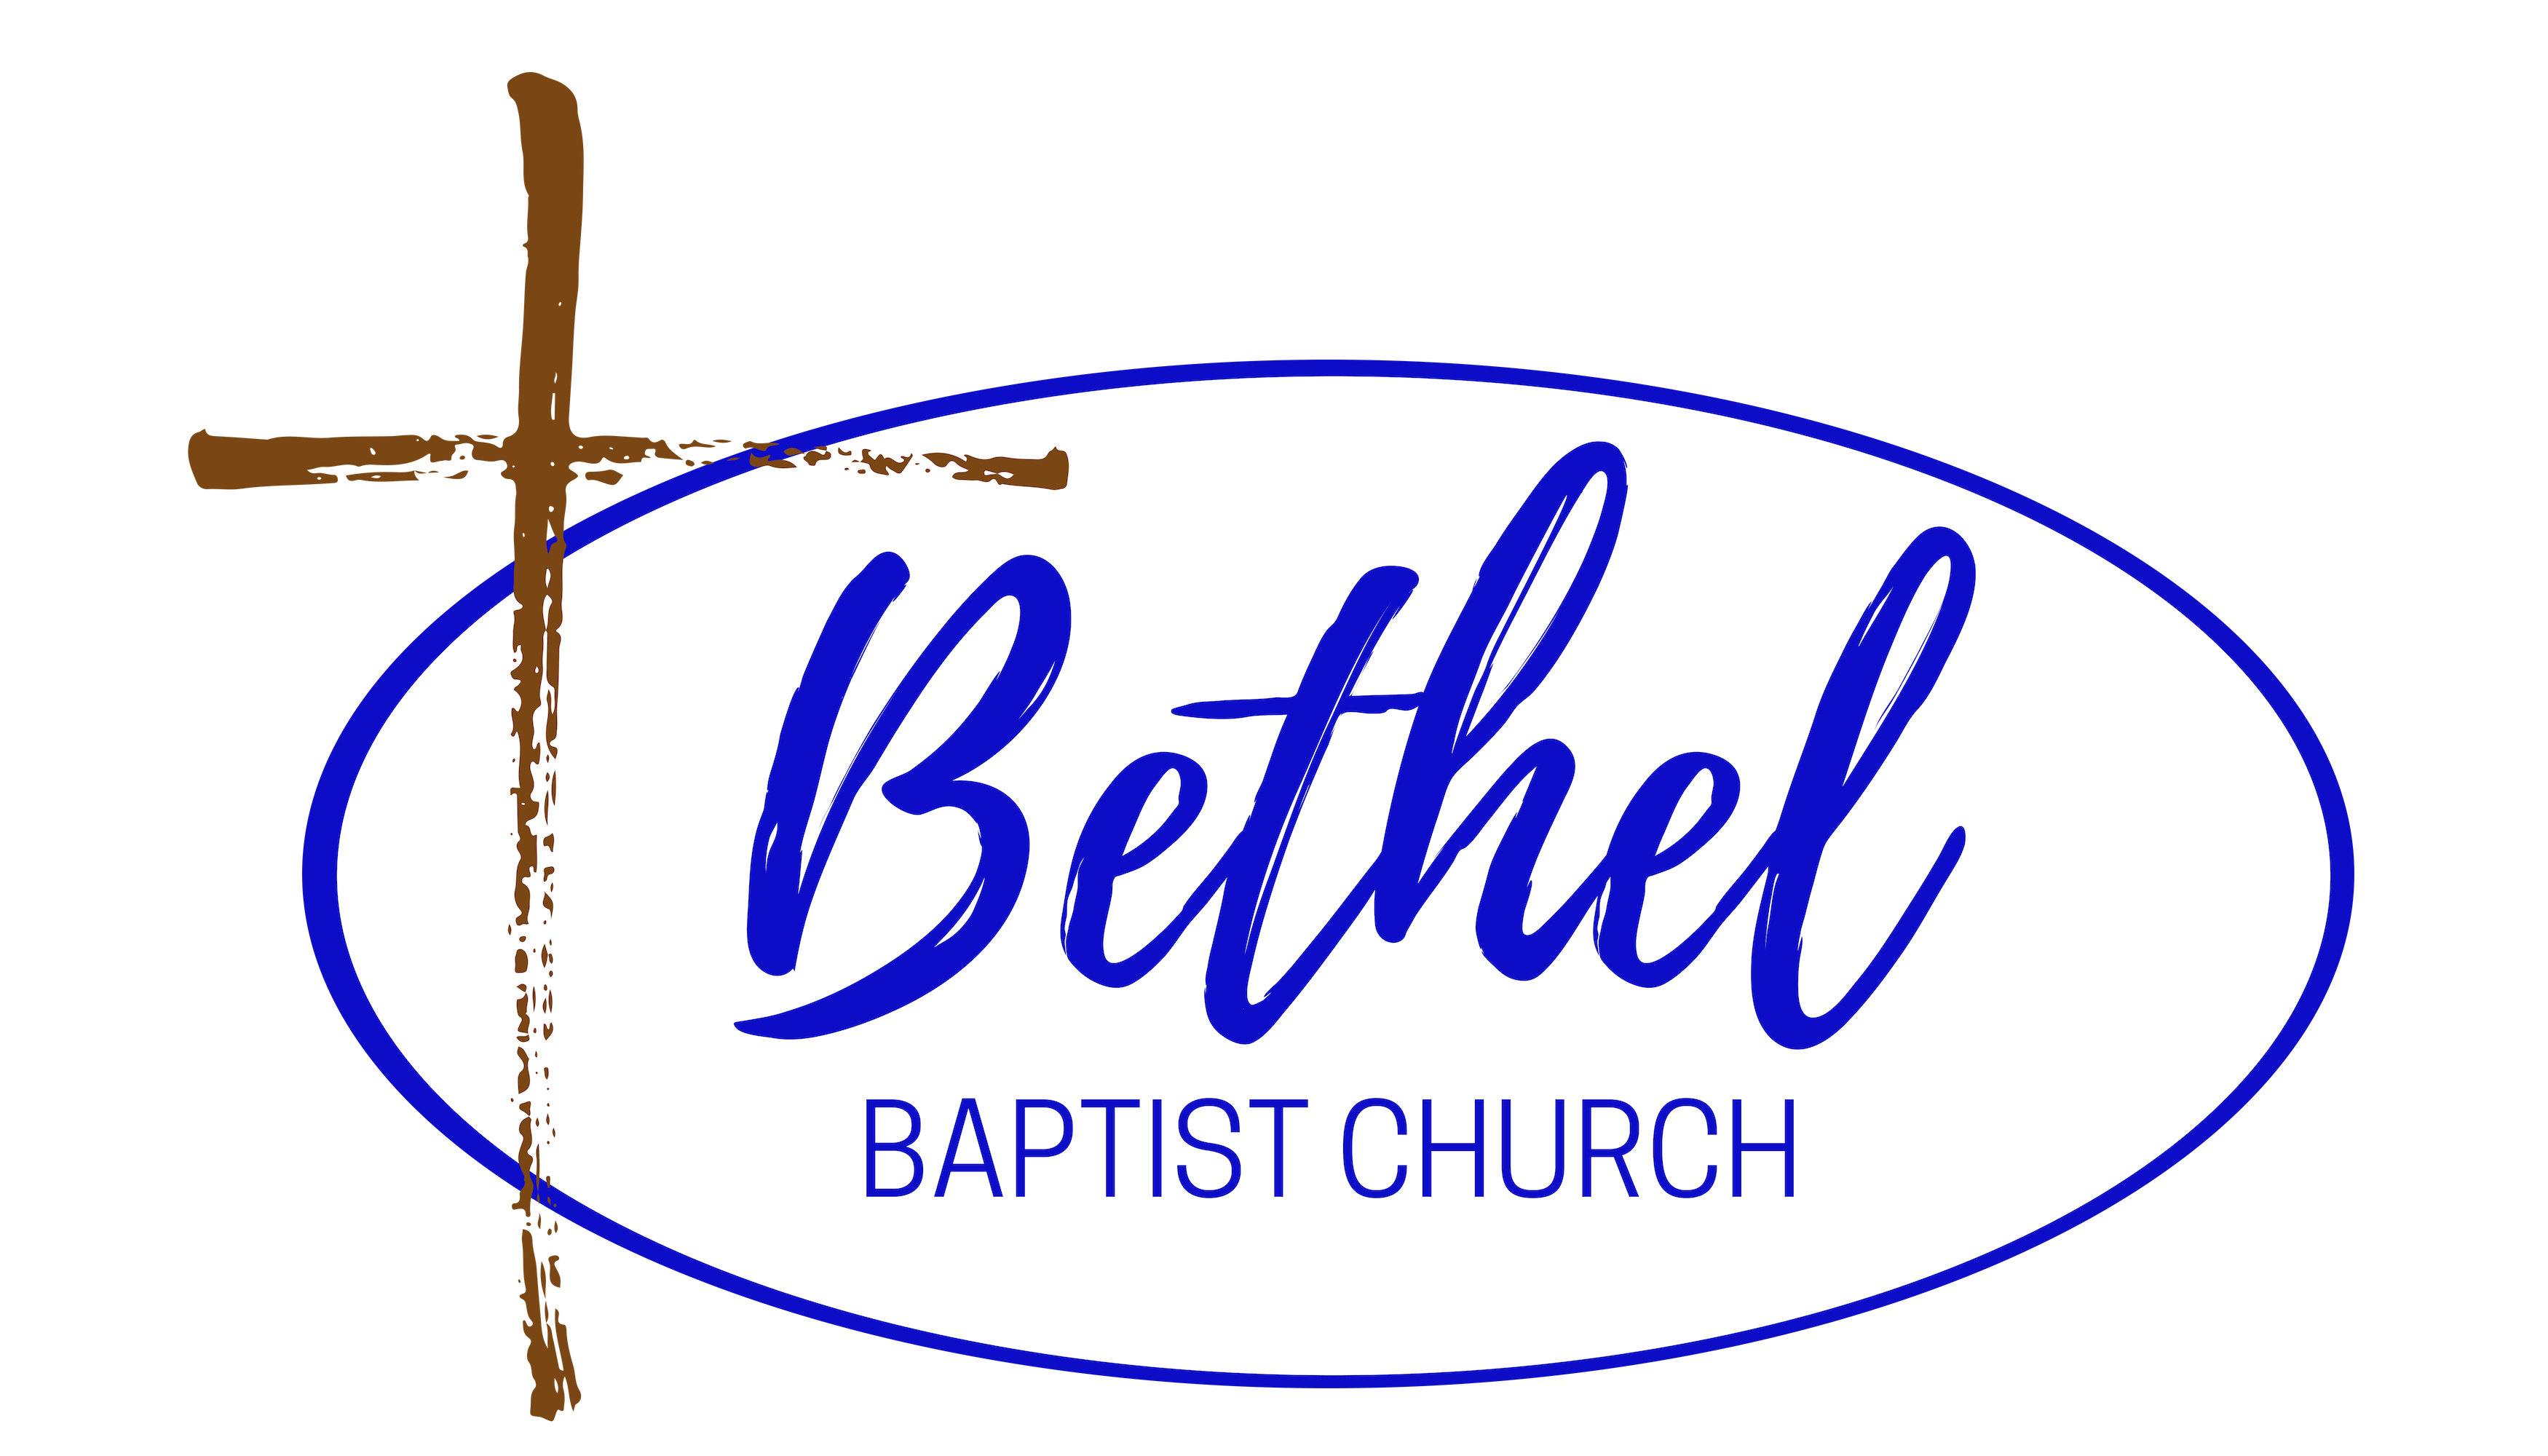 Welcome to Bethel Baptist Church